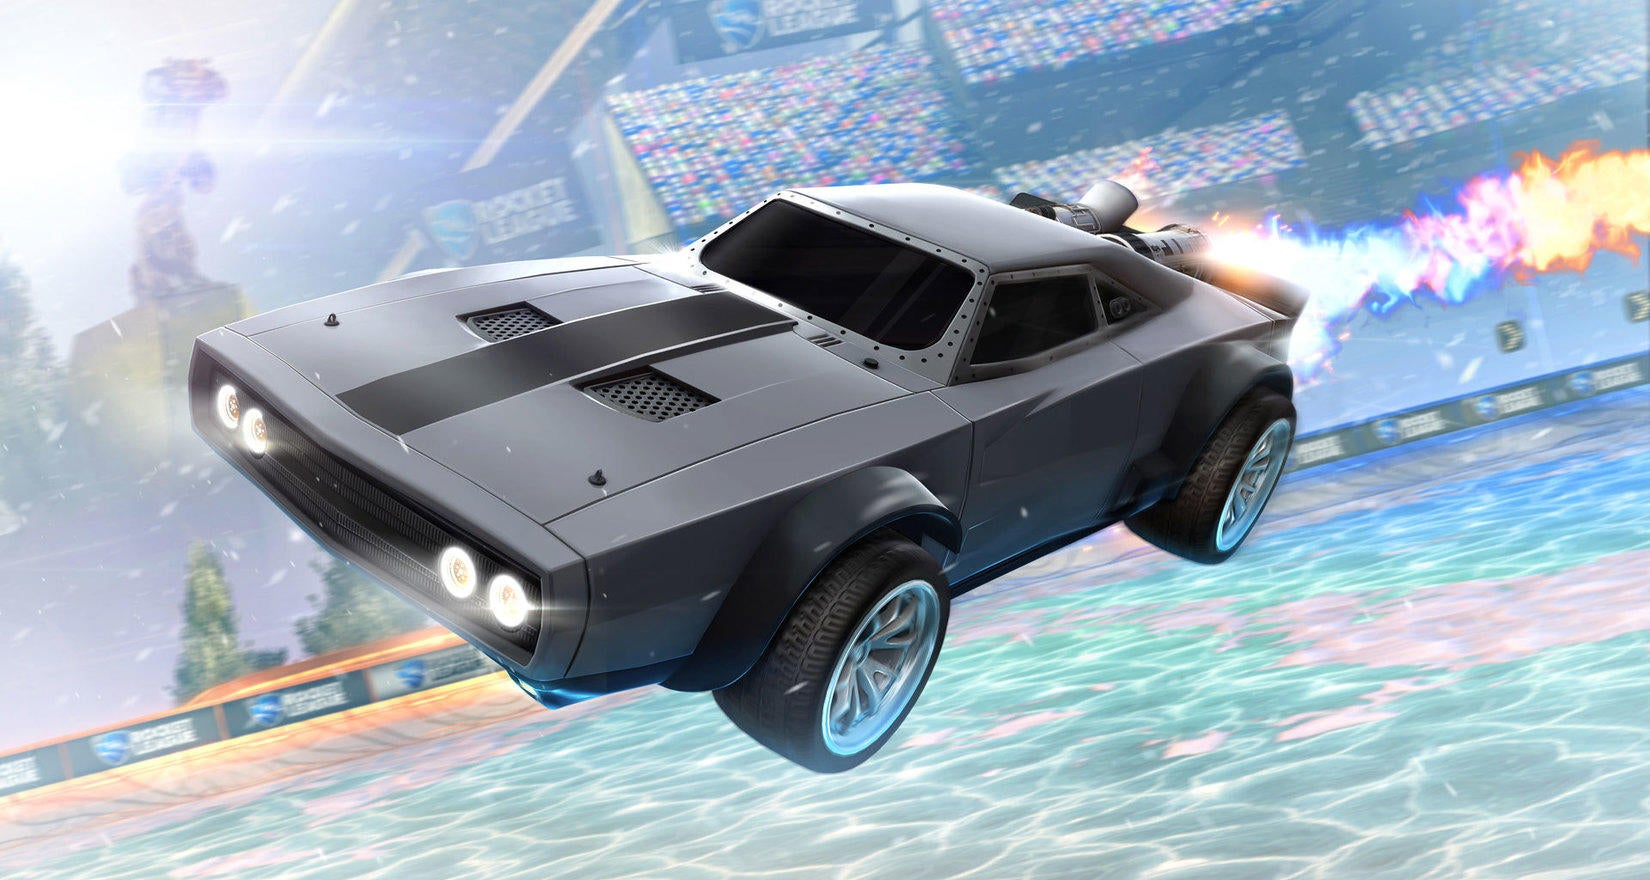 Rocket League Teams Up With The Fate Of The Furious Image